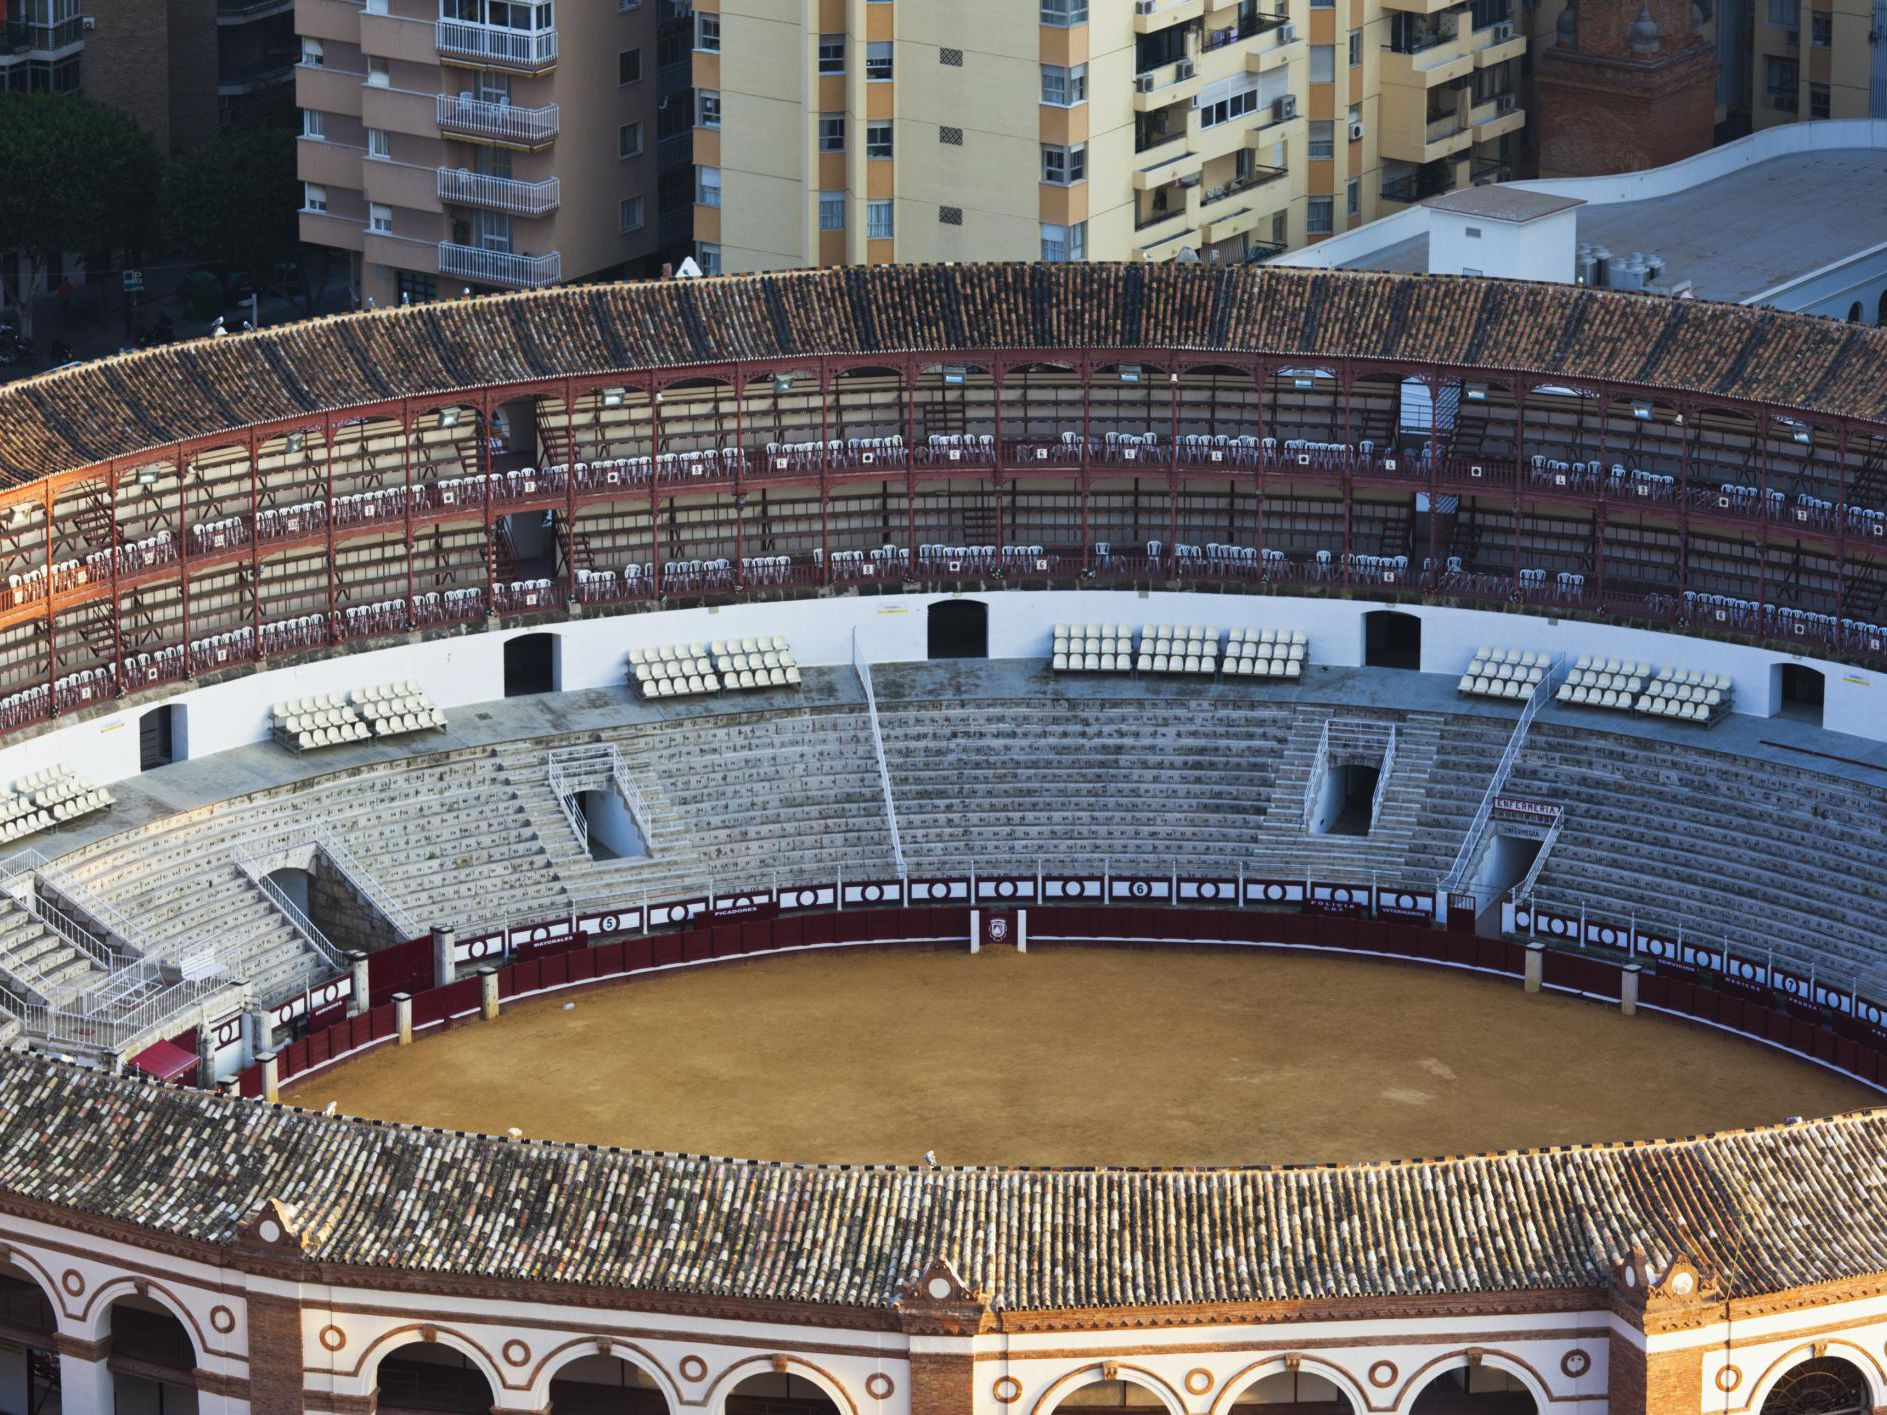 Where & When to See a Bullfight in Spain